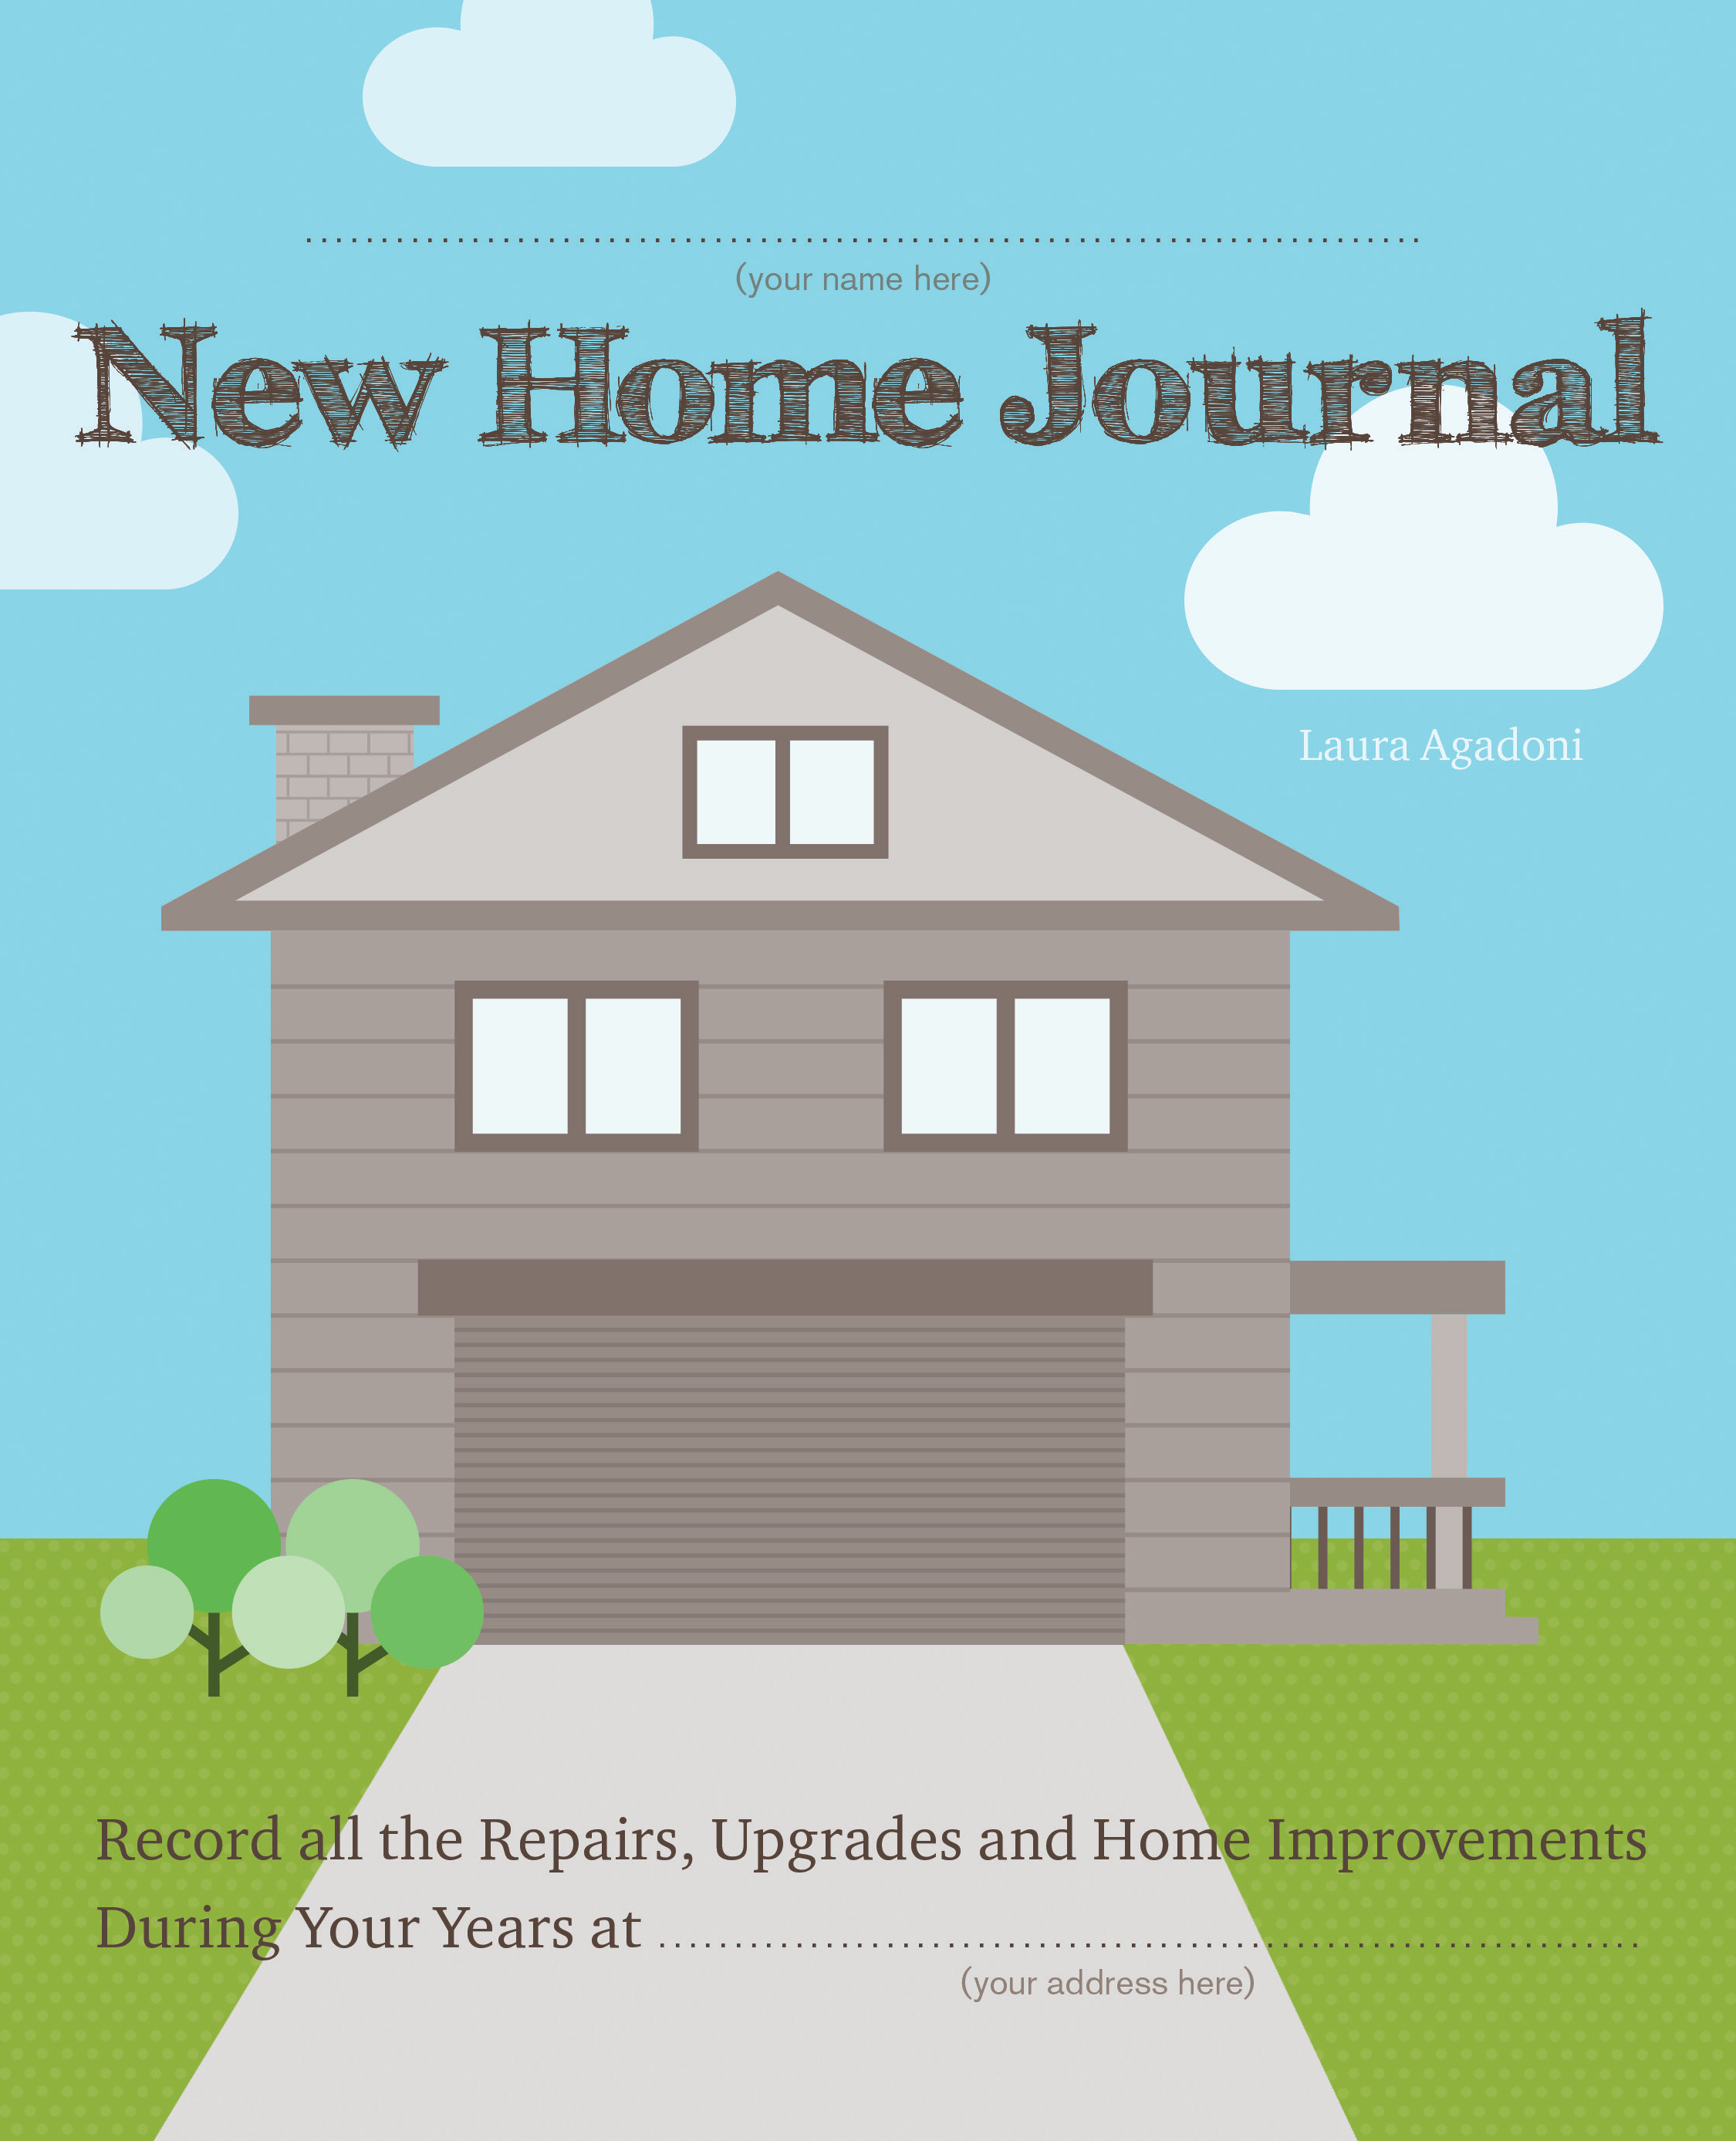 New Home Journal: Record all the Repairs, Upgrades and Home Improvements During Your Years at...